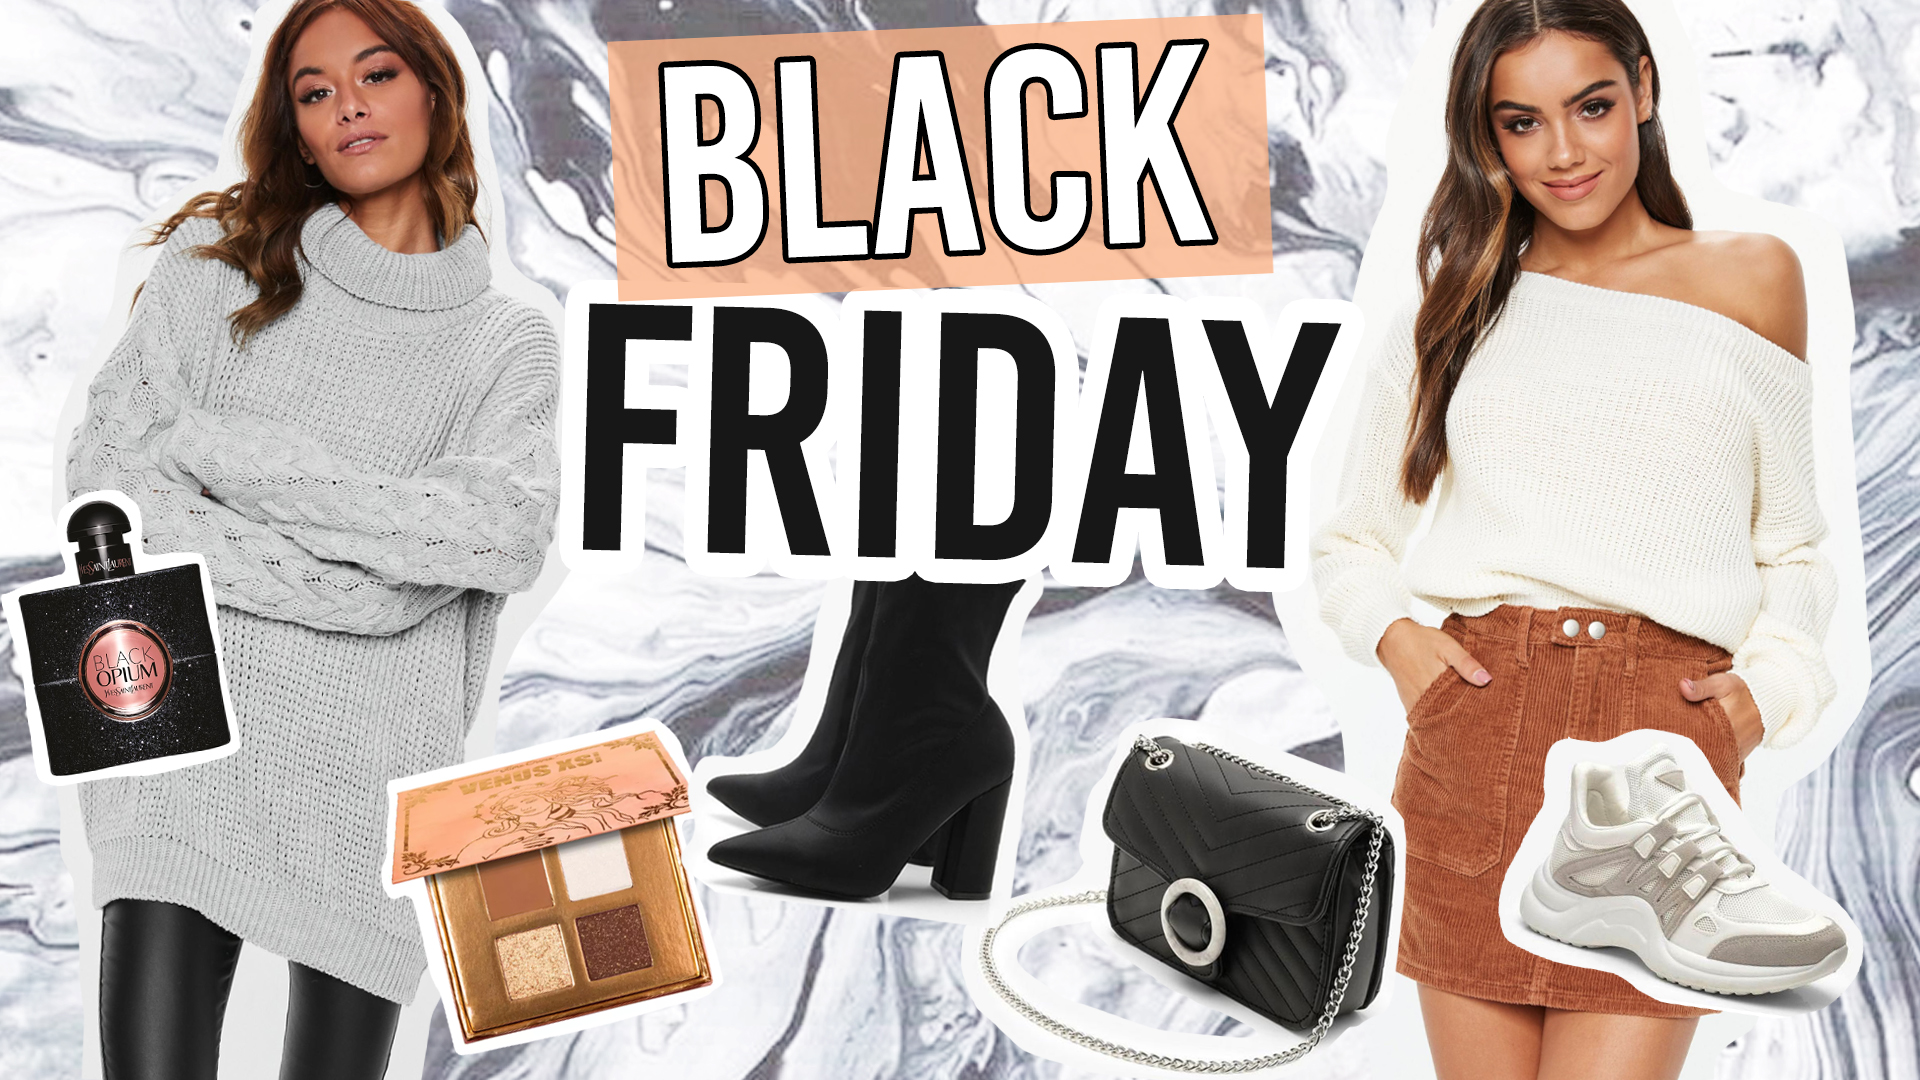 black friday mode beauté sélection code promo